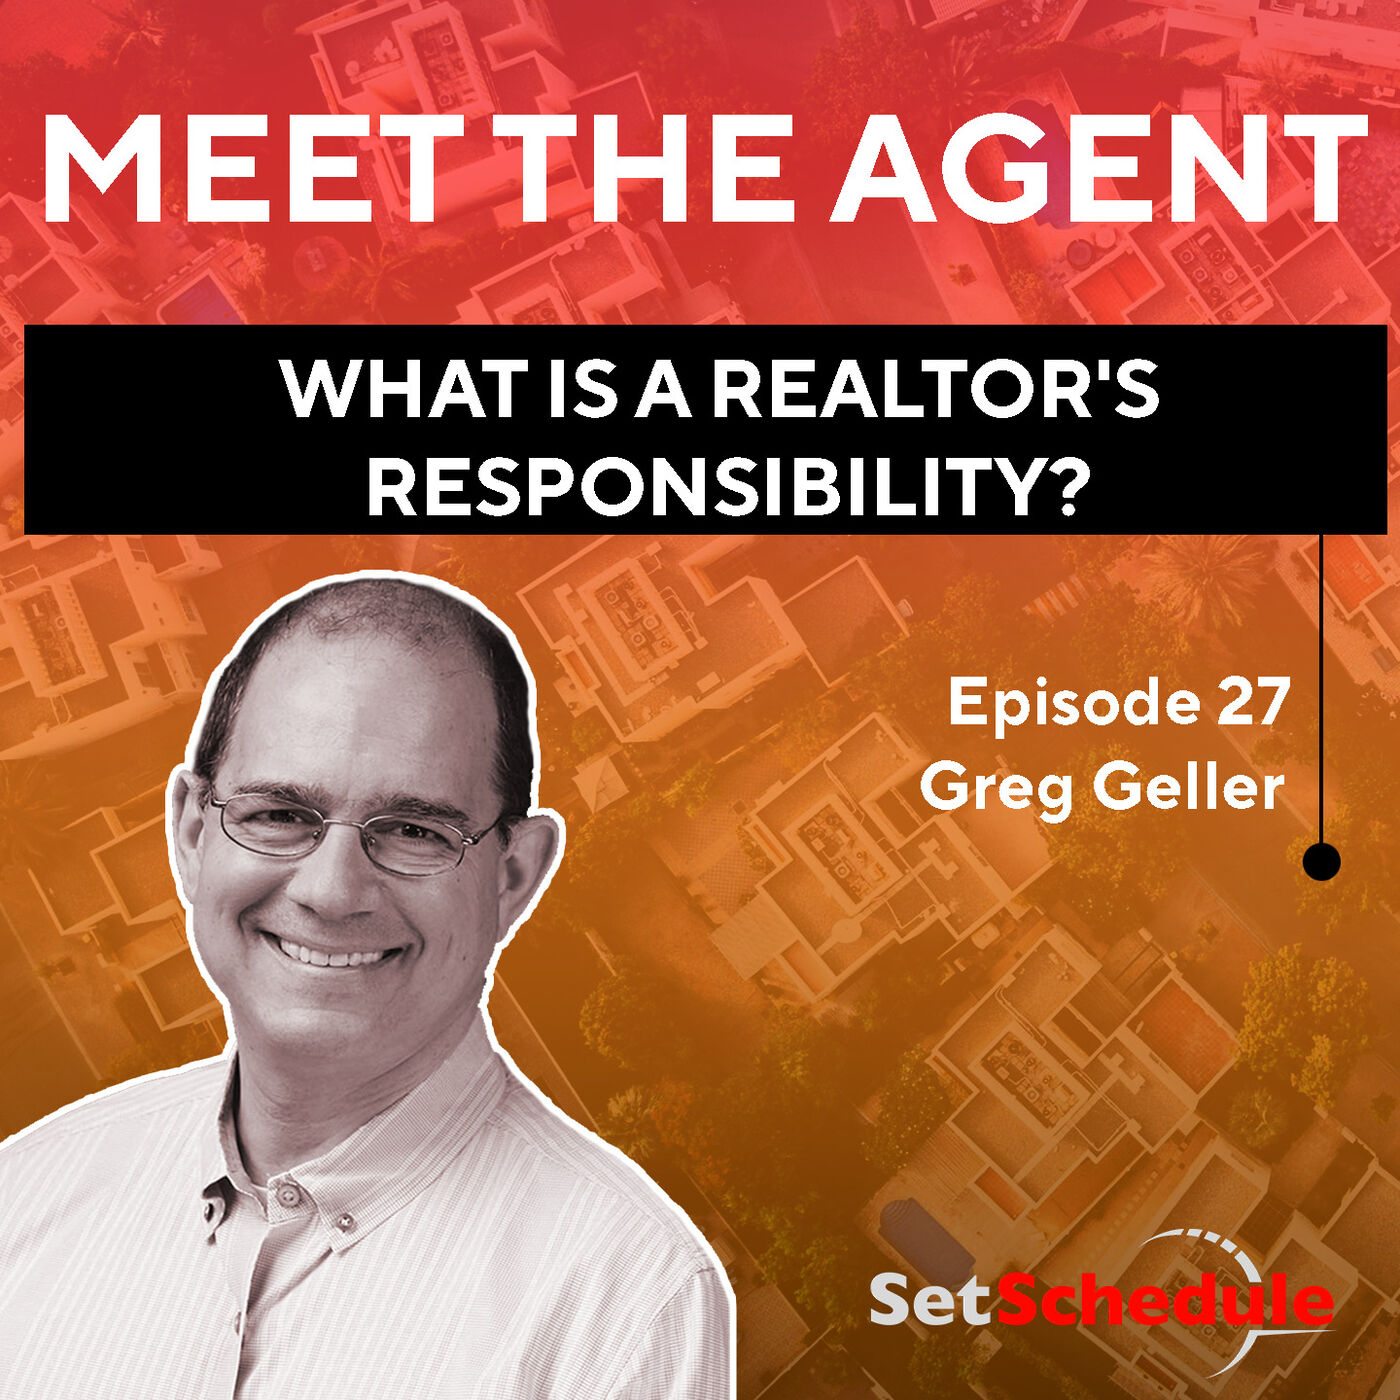 What is A Realtor's Responsibility? - Greg Geller